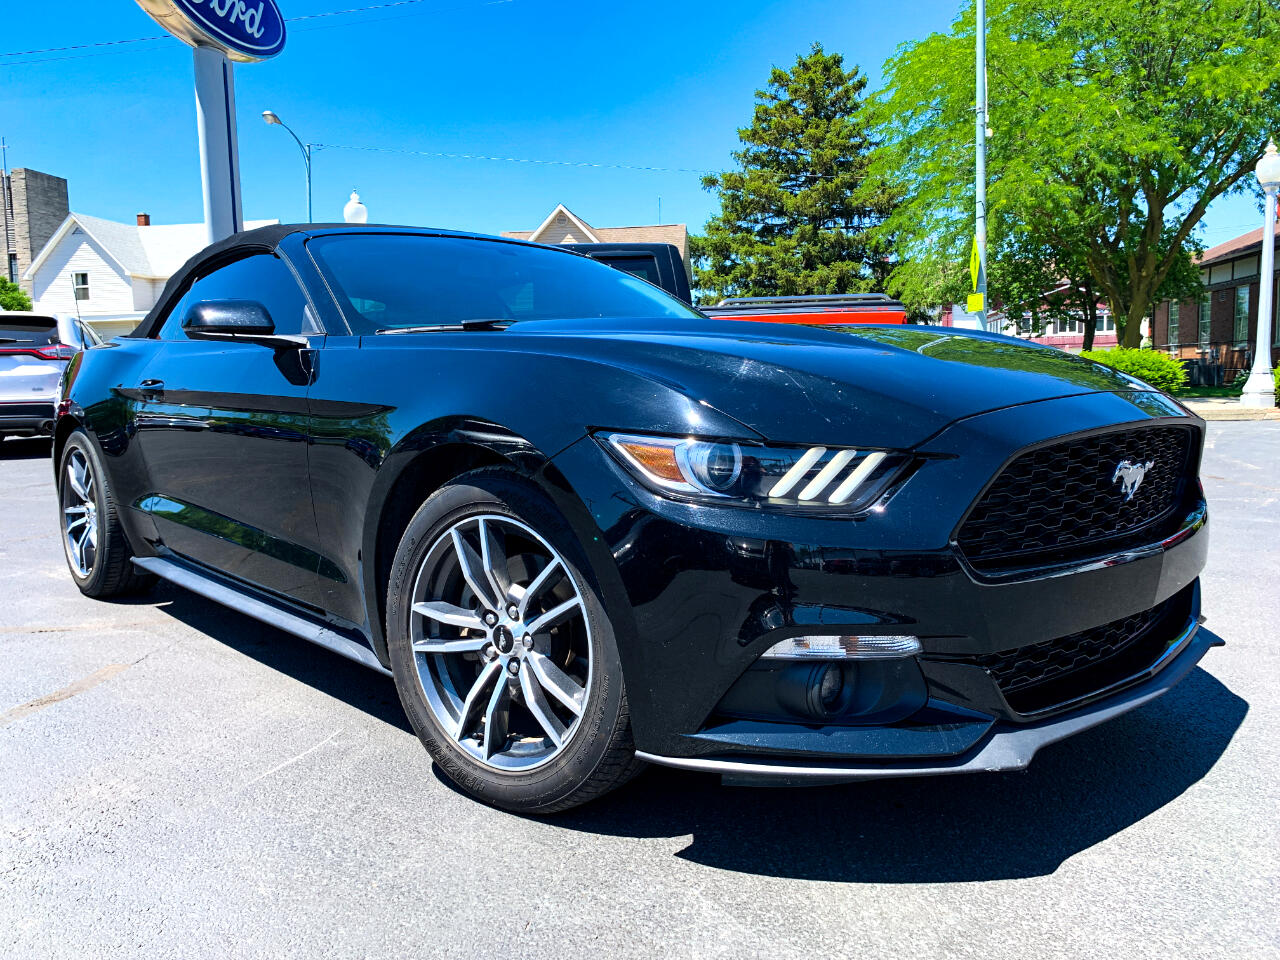 Ford Mustang Eco Premium 2D Convertible 2017